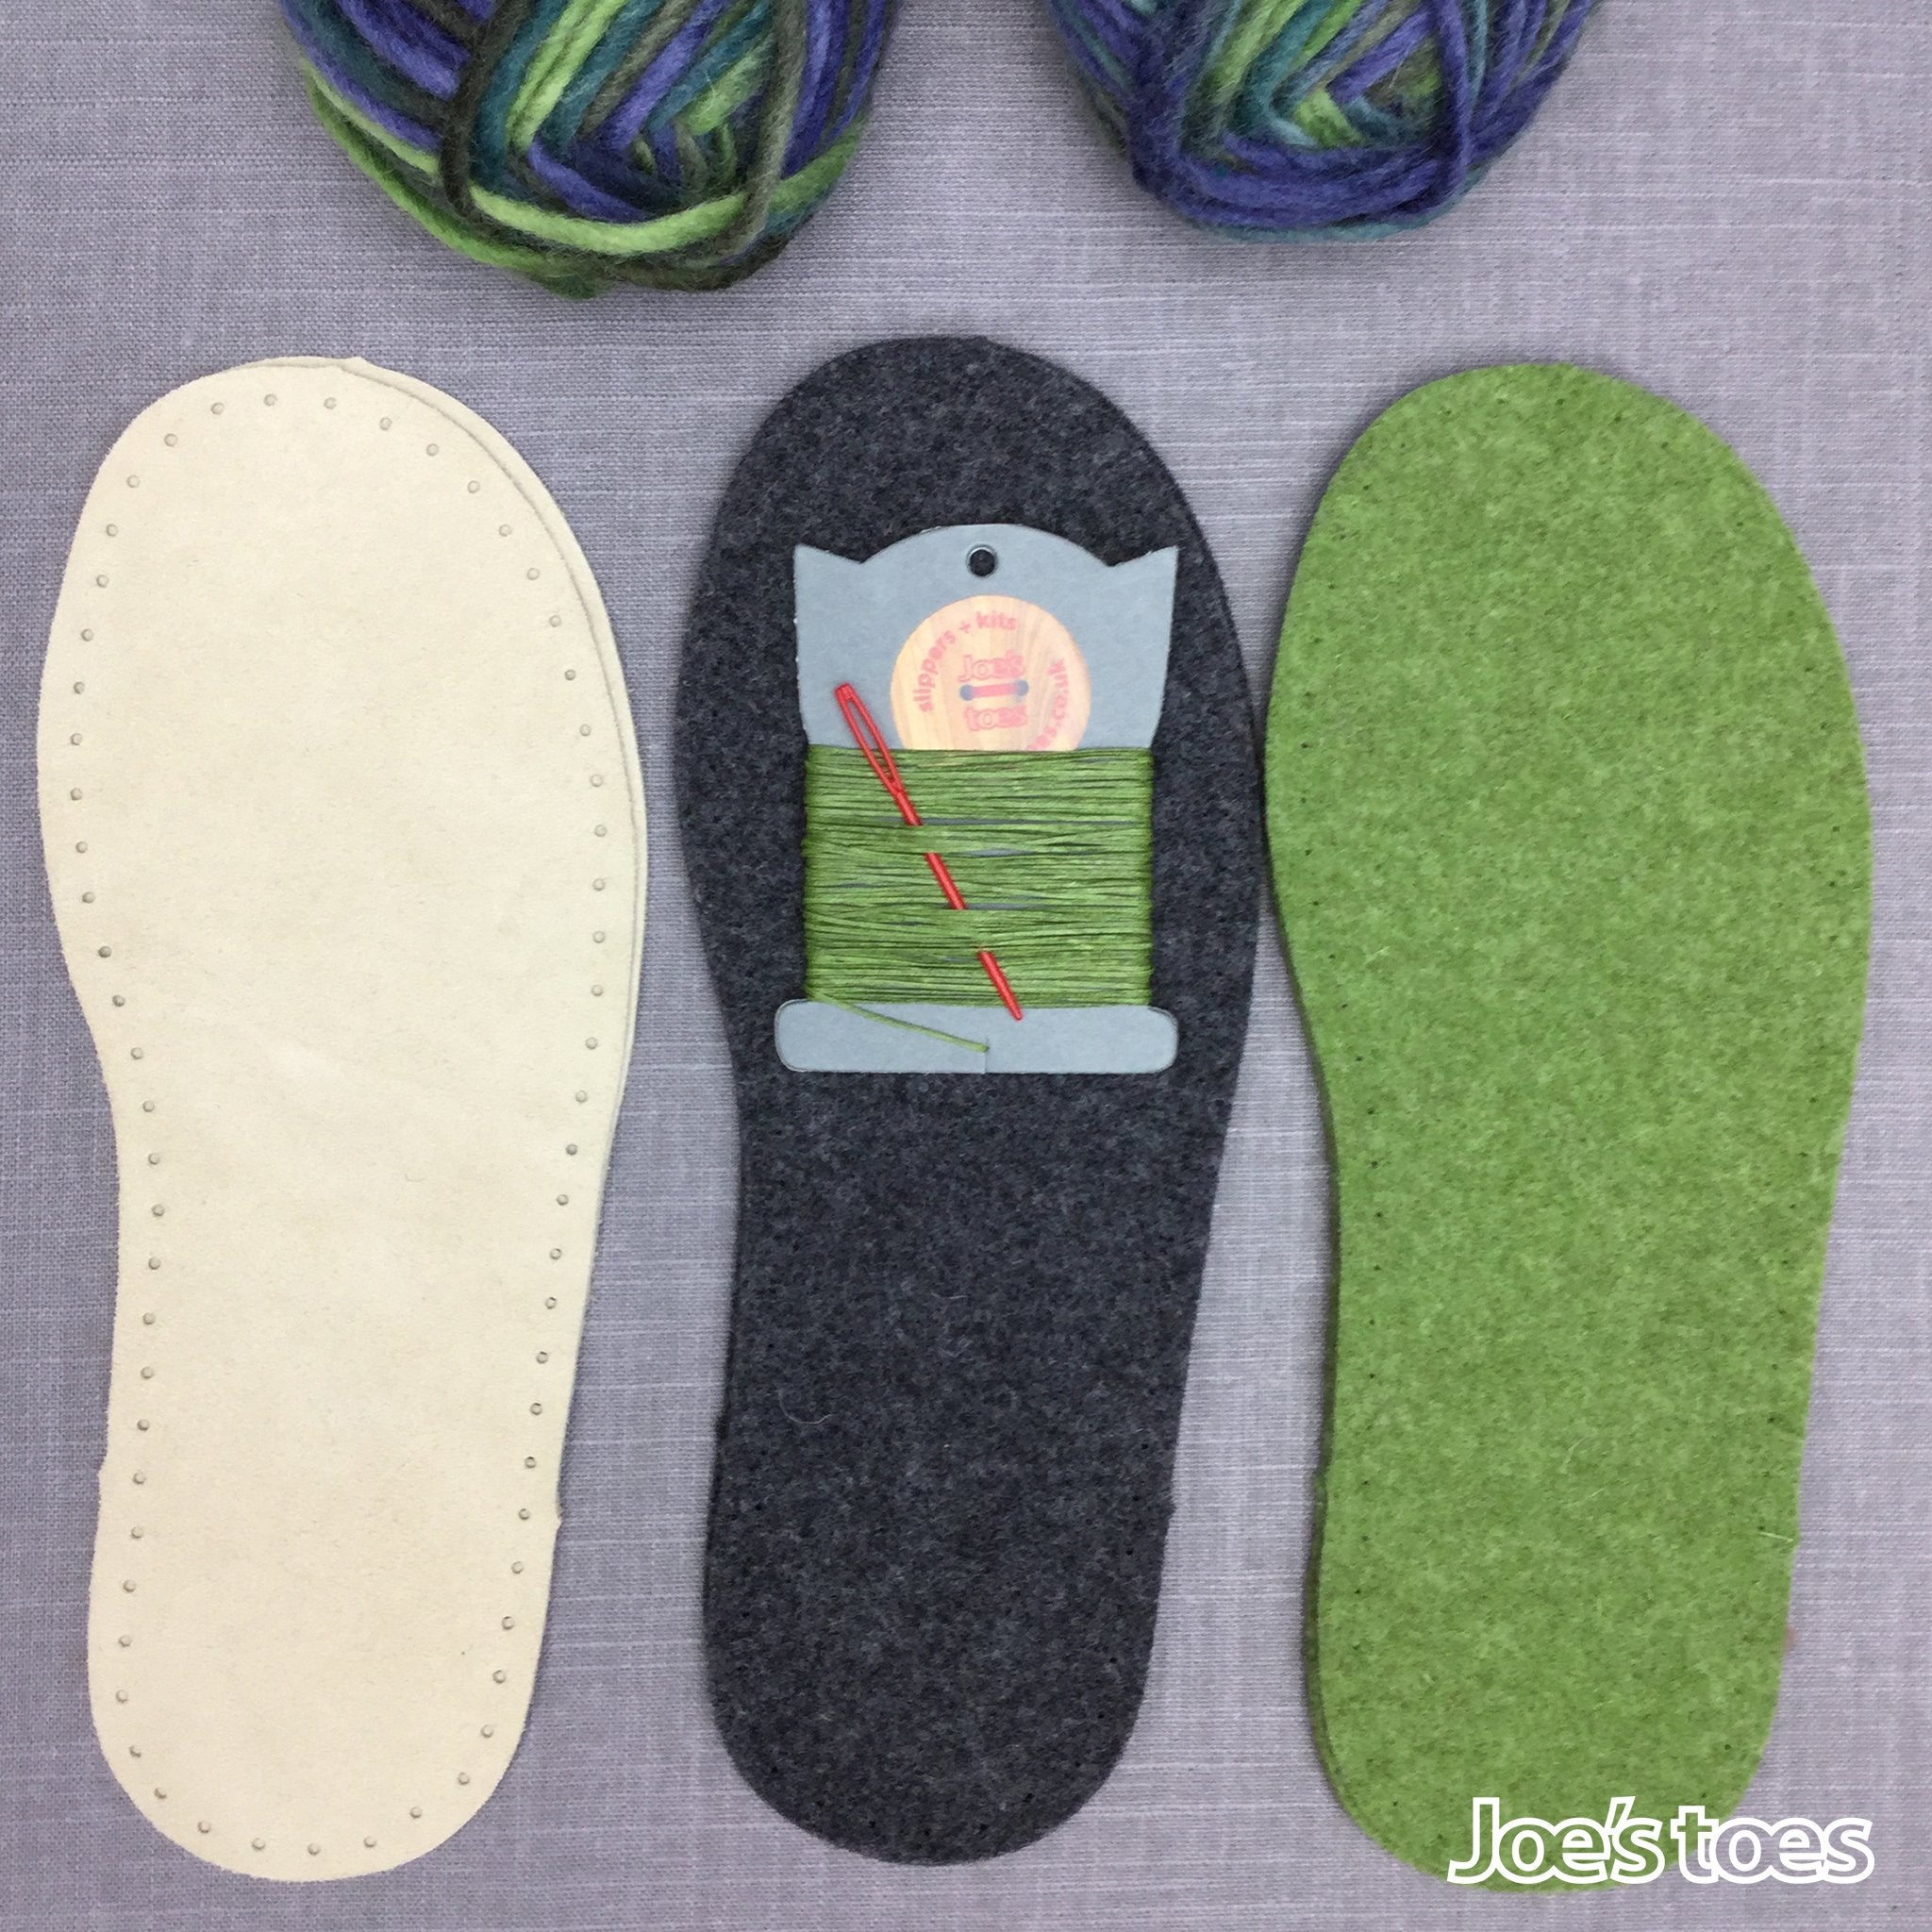 302be69bd2ef Joe s Toes Crossover Knitted Slipper Kit in U.S. sizes – Joe s Toes US